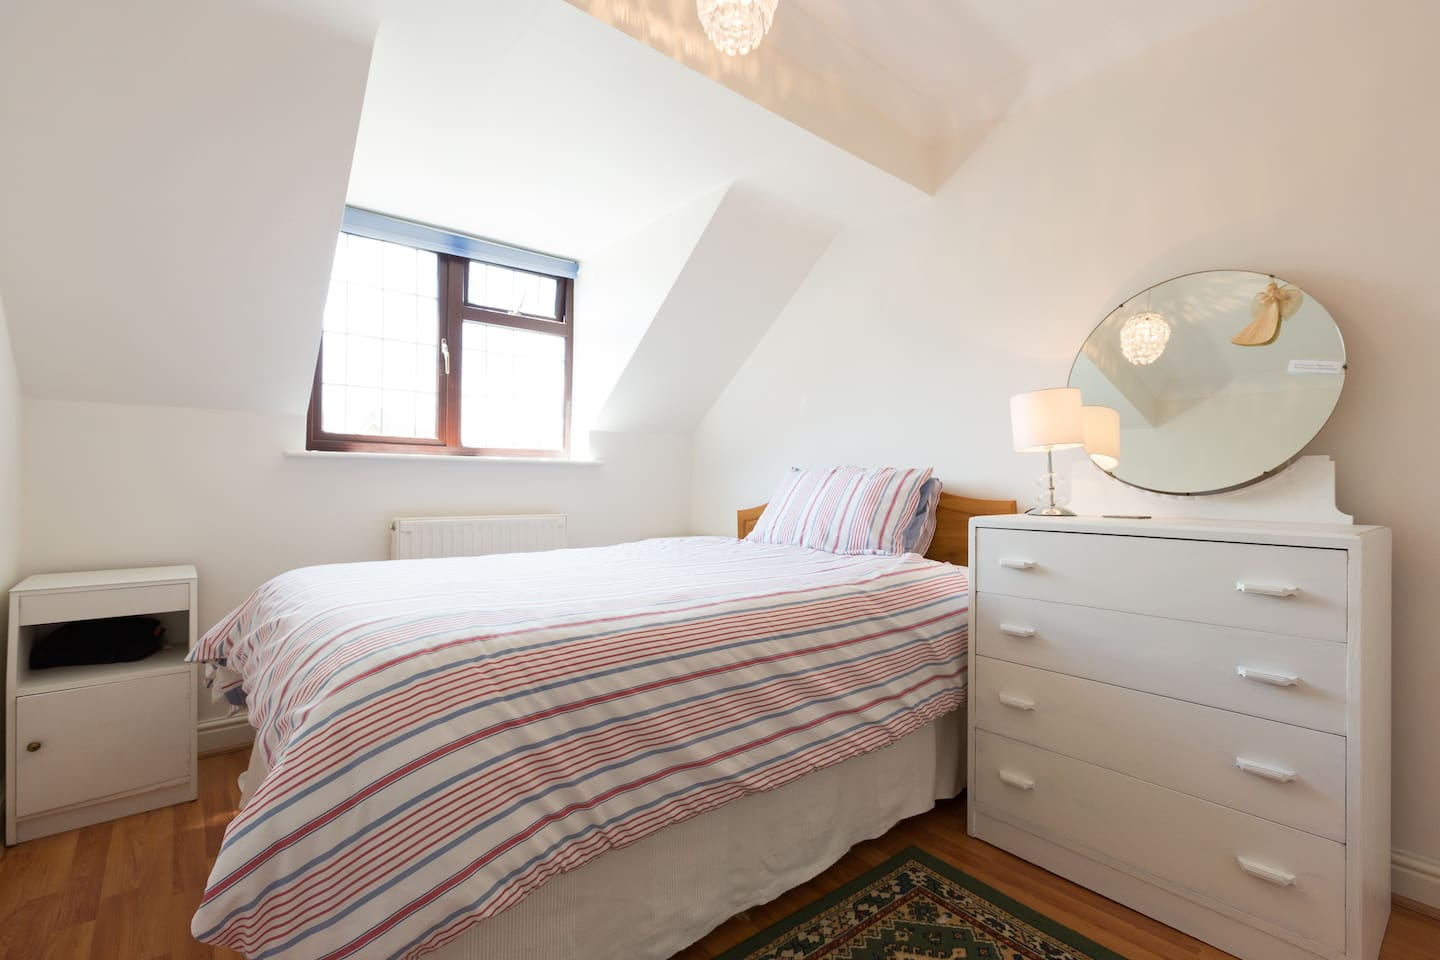 Hideaway is a quiet out of the way double room with TV, hanging rail, fast internet. There is a guest living room, use of the kitchen and garden.  Wonderful for relaxing after a day out working or touring !